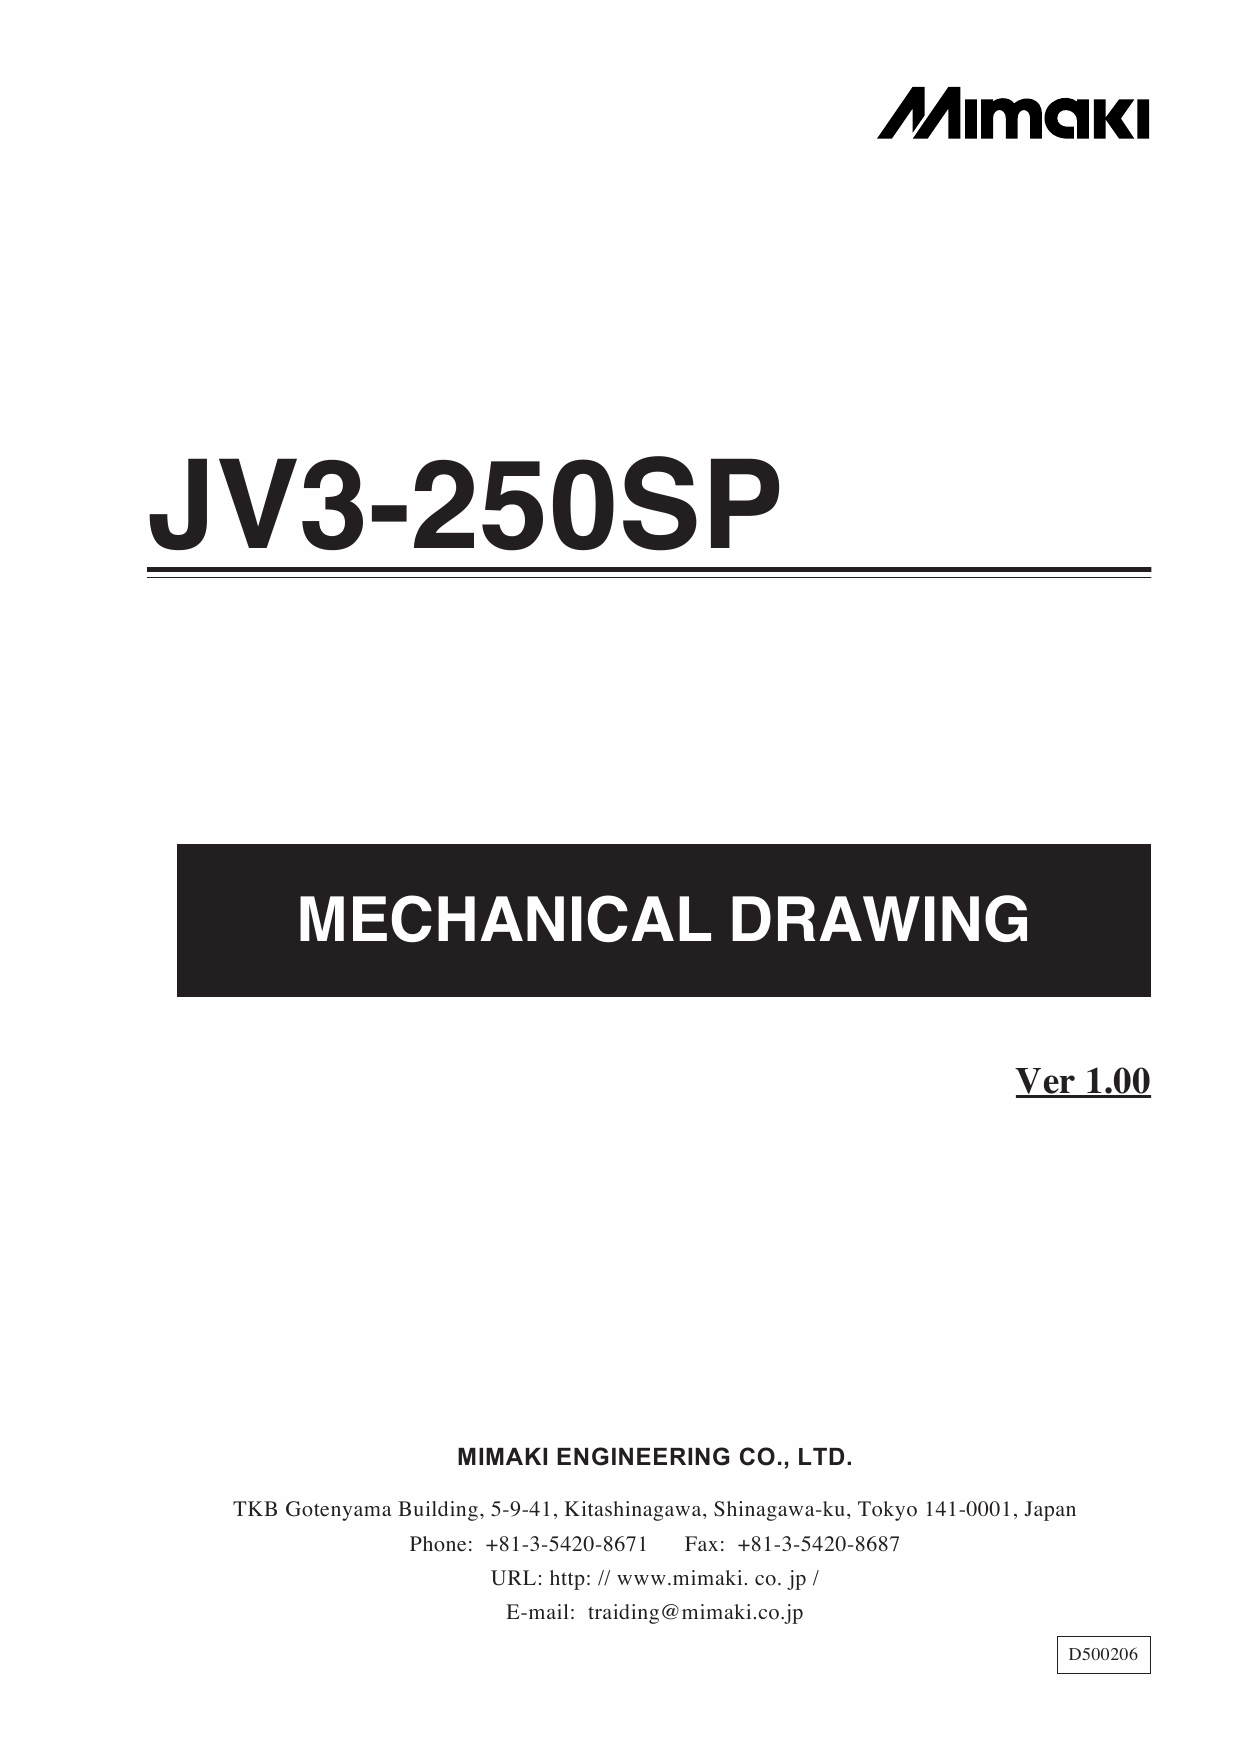 MIMAKI JV3 250SP MECHANICAL DRAWING Parts Manual-1